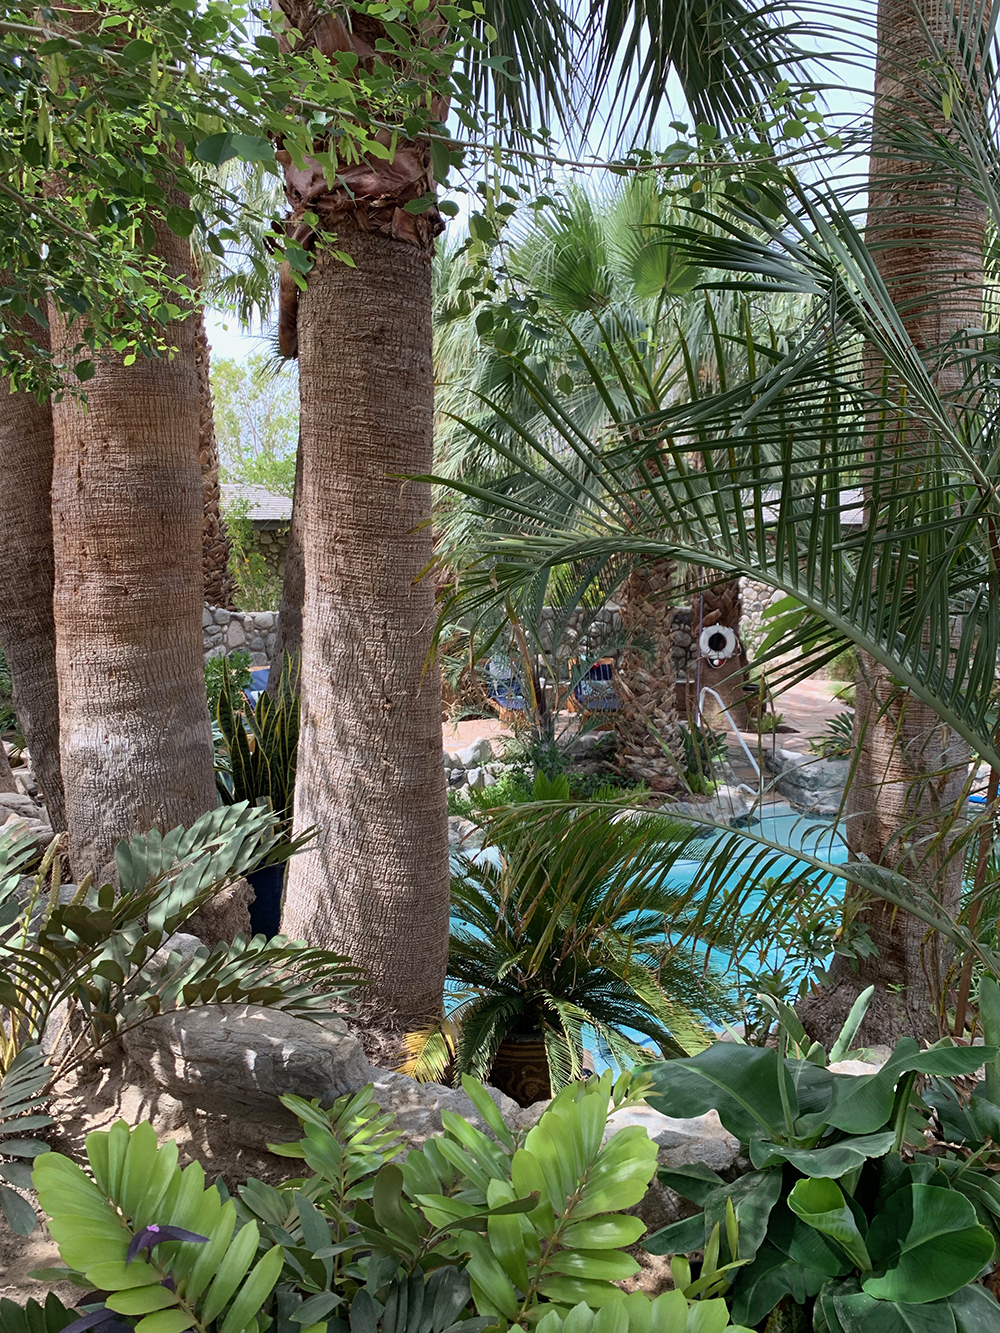 A glimpse of the pool through the lush trees.